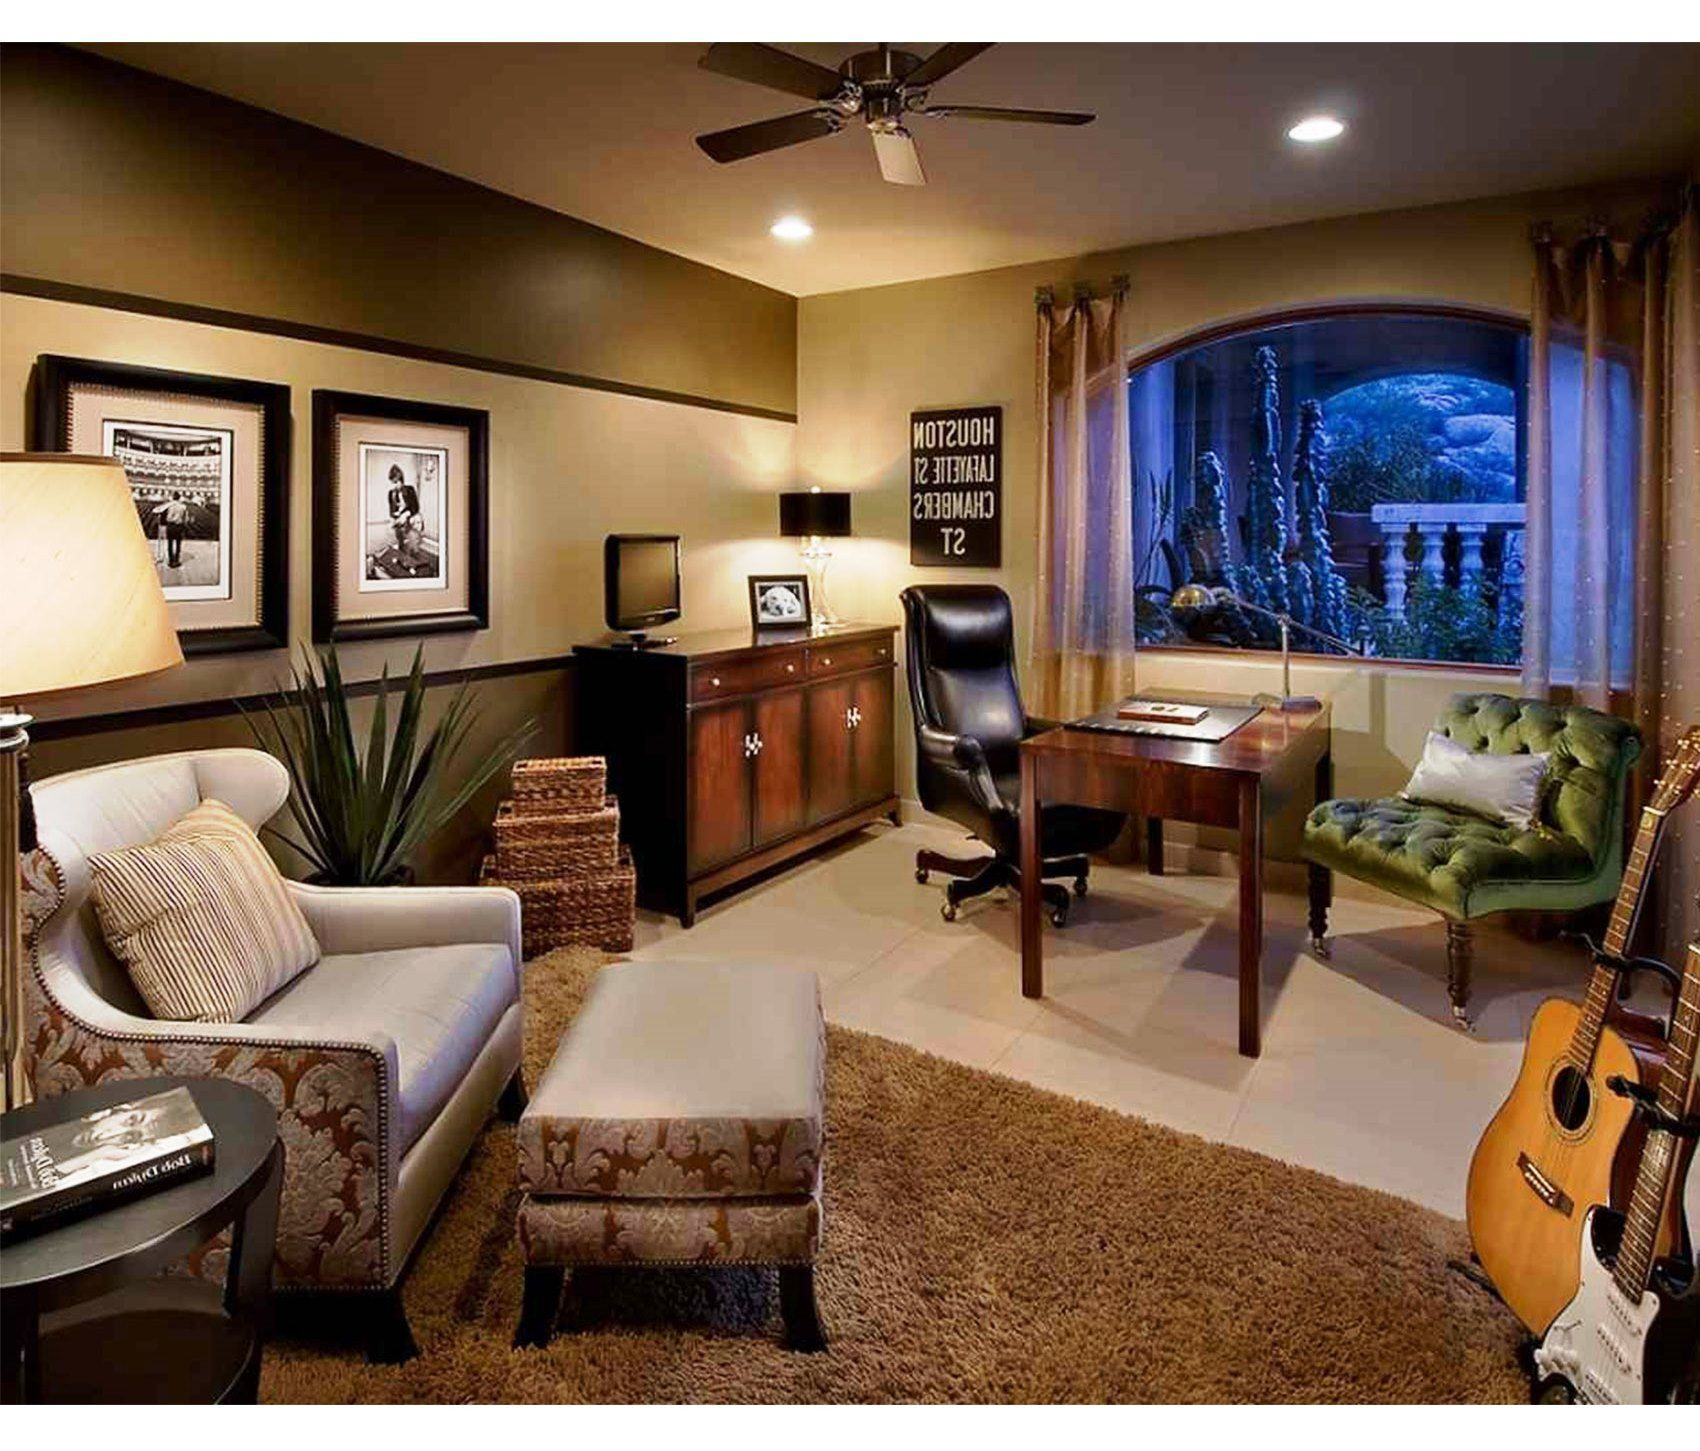 Home Interior Design Indianapolis Homemade Ftempo